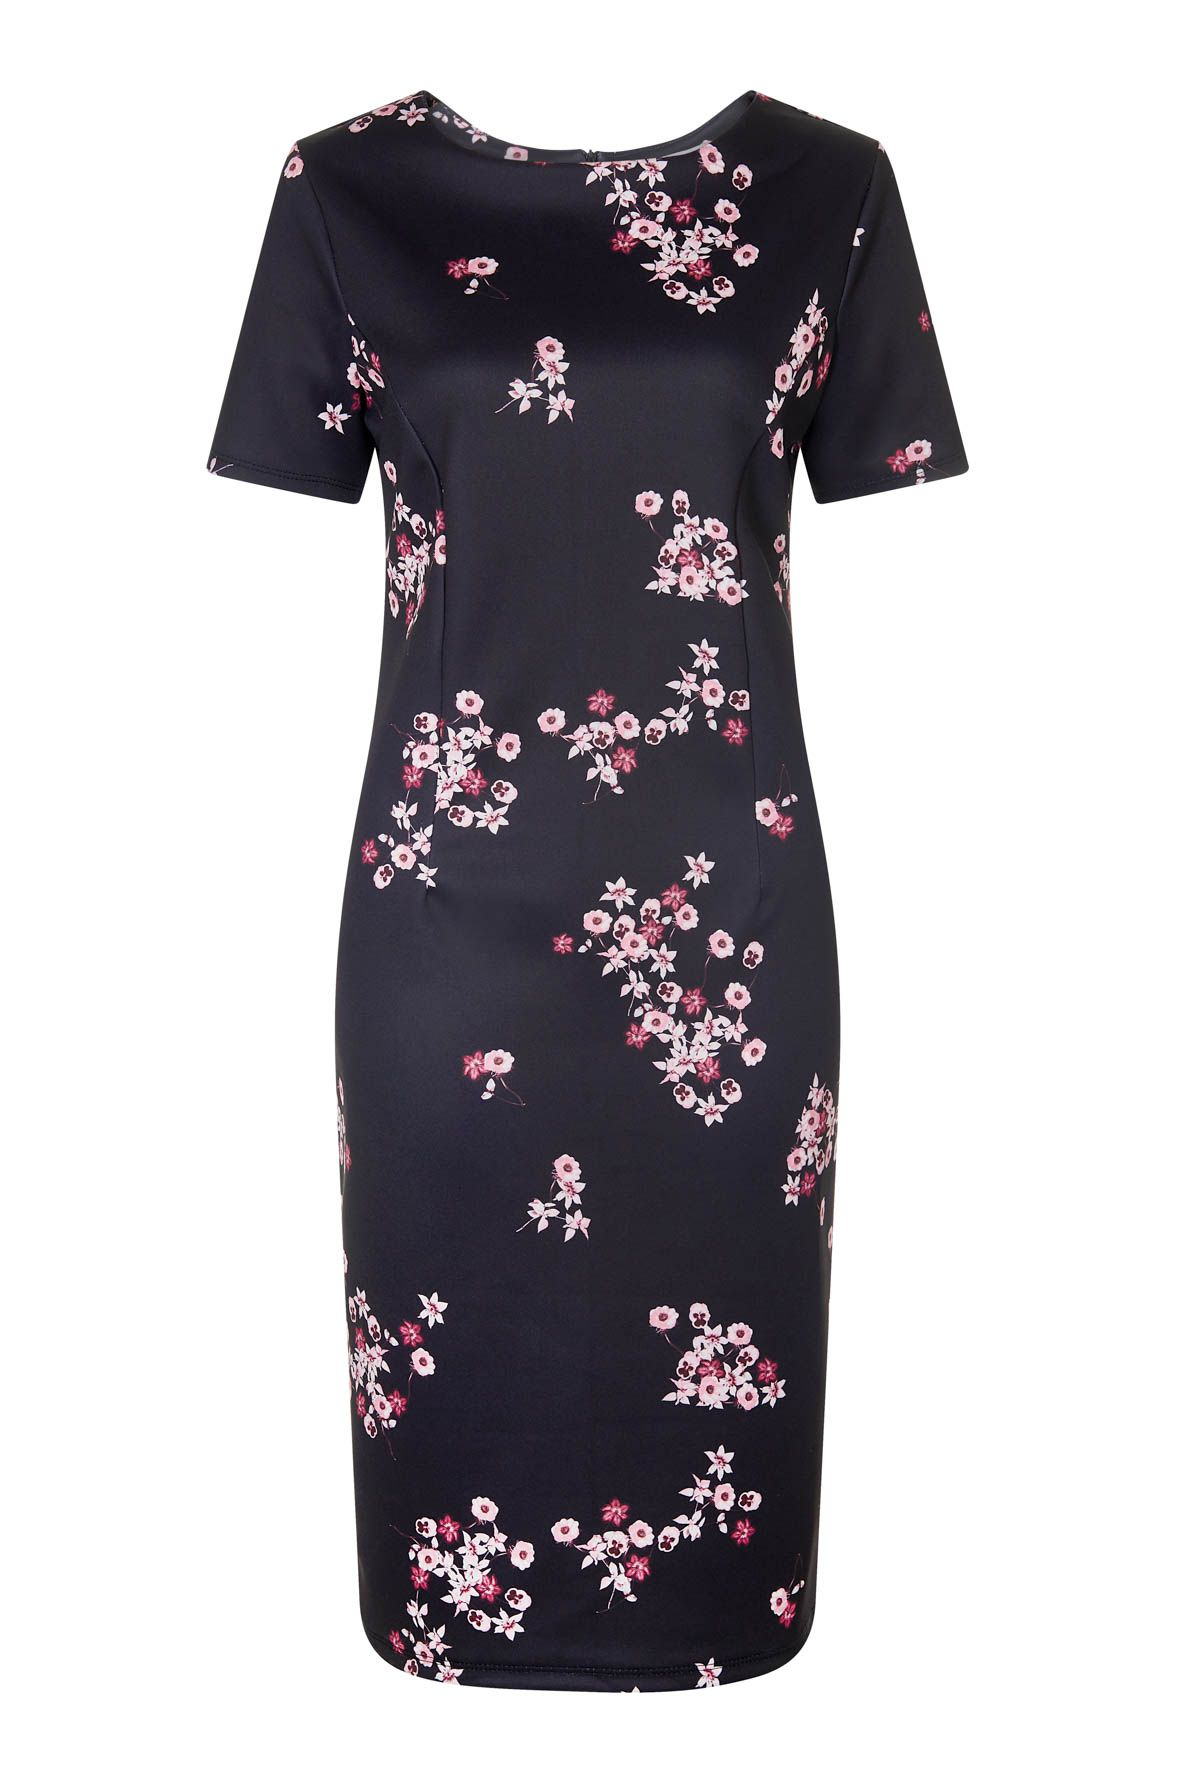 Havren Sinead Floral Dress, Black